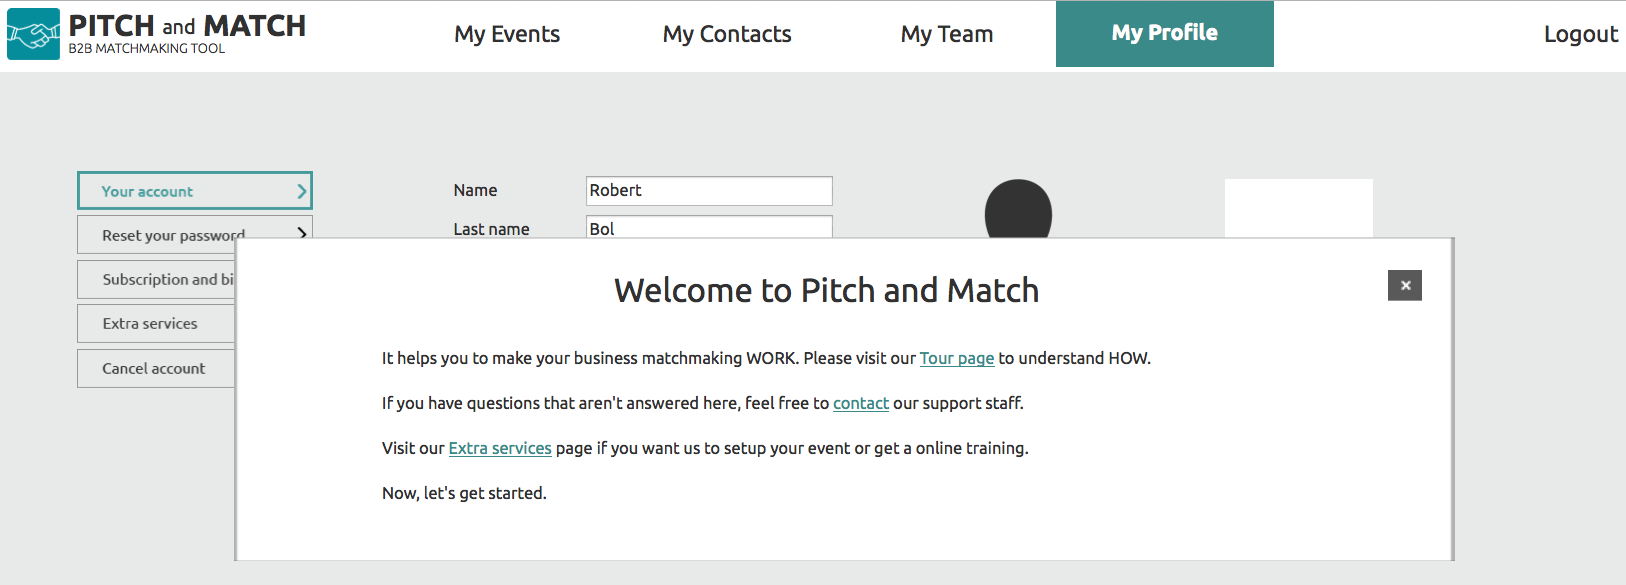 Welcome to Pitch and Match